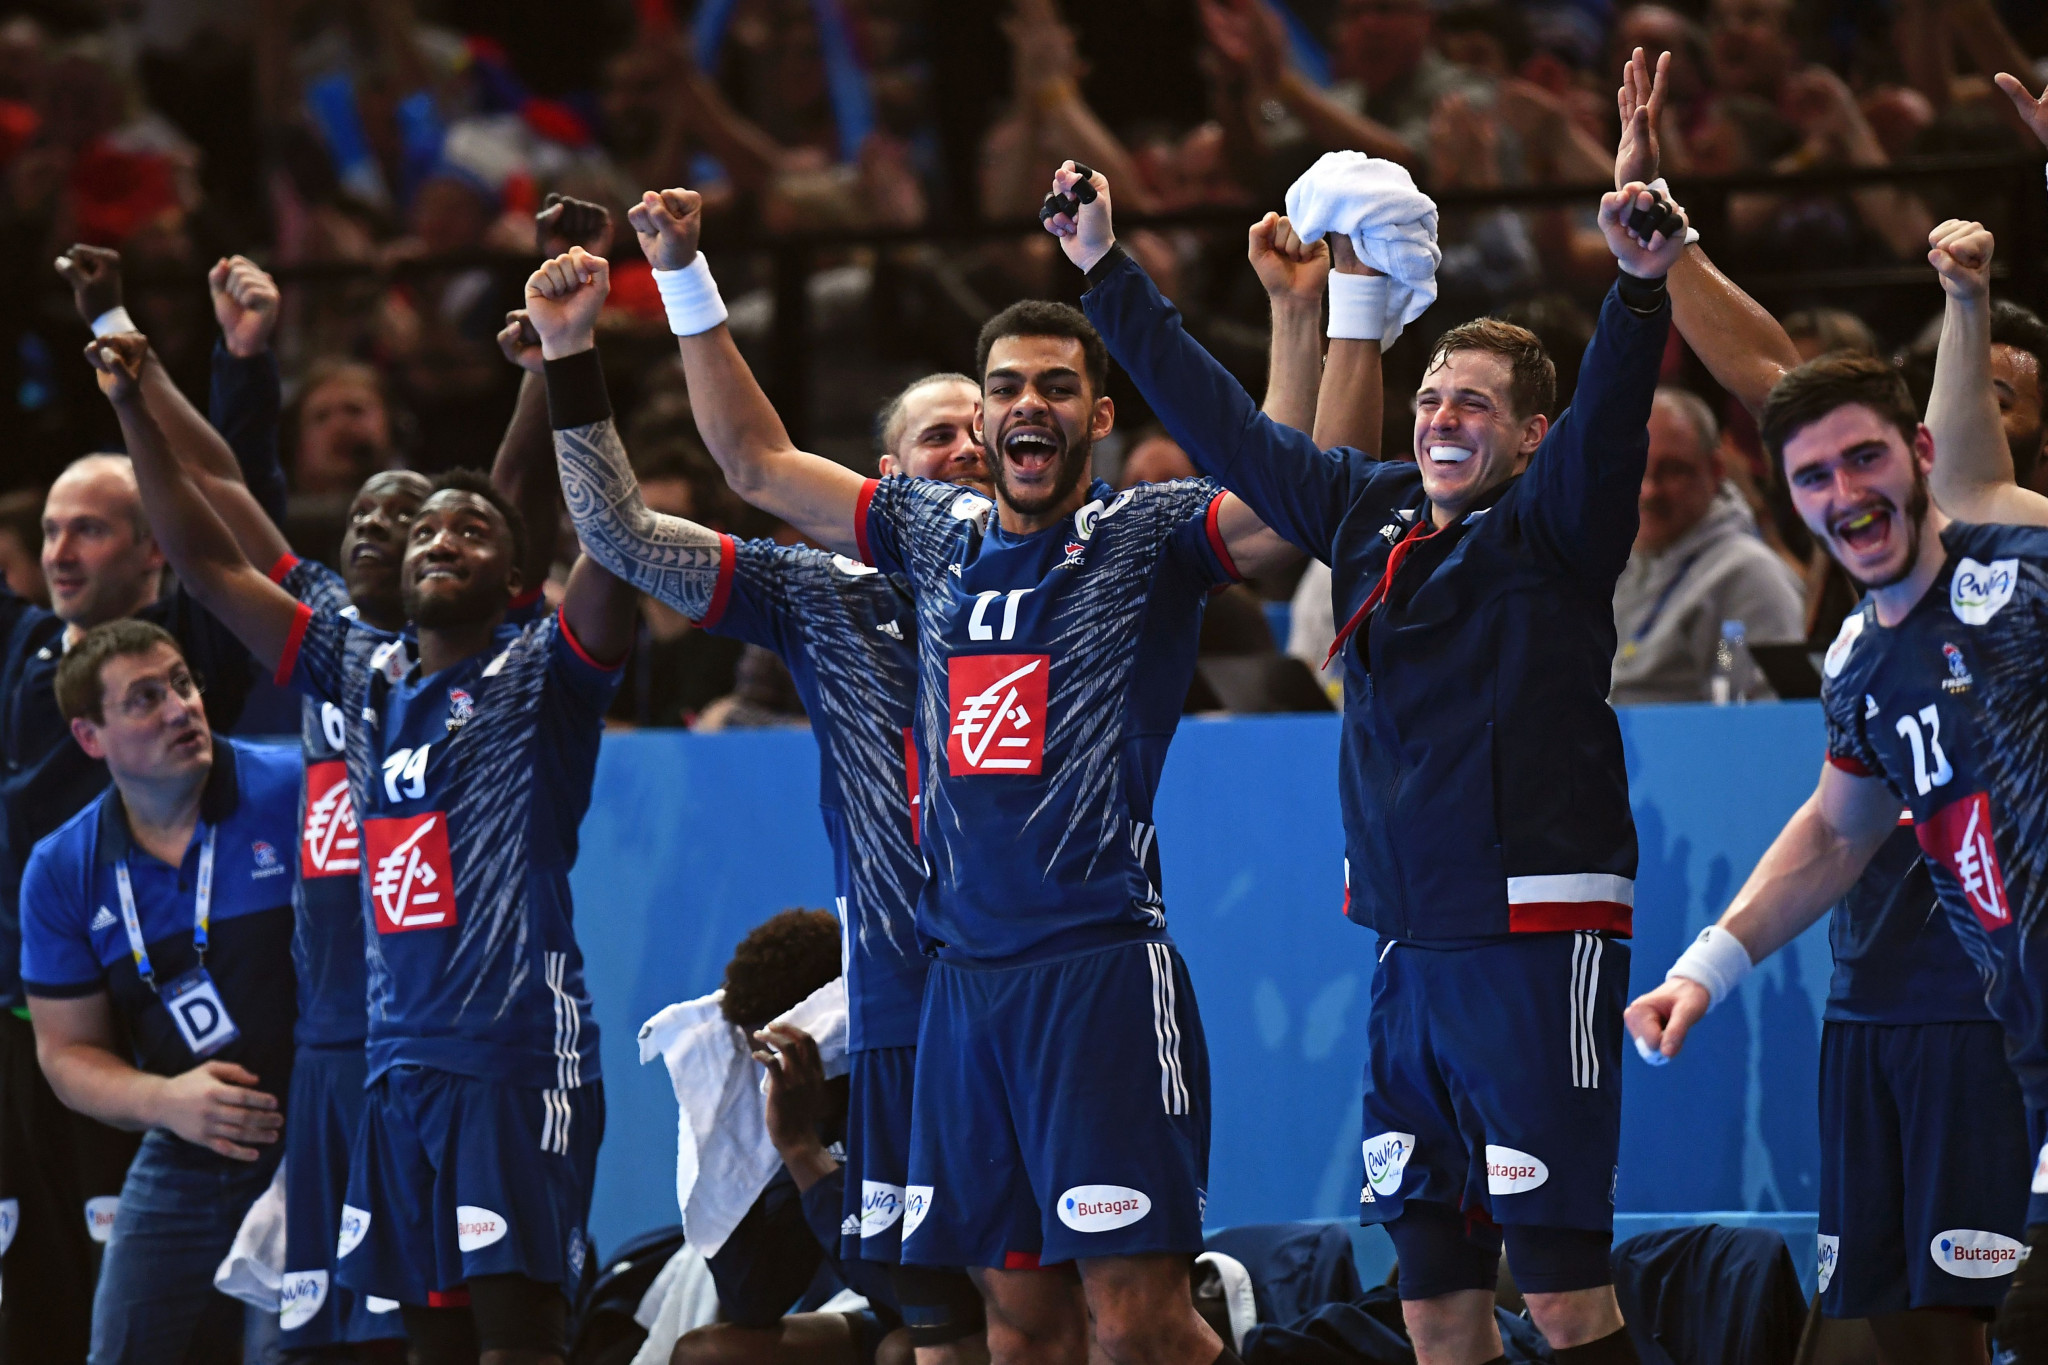 The International Handball Federation Council has taken the decision to increase the number of teams at its World Championship events from 24 to 32 ©Getty Images